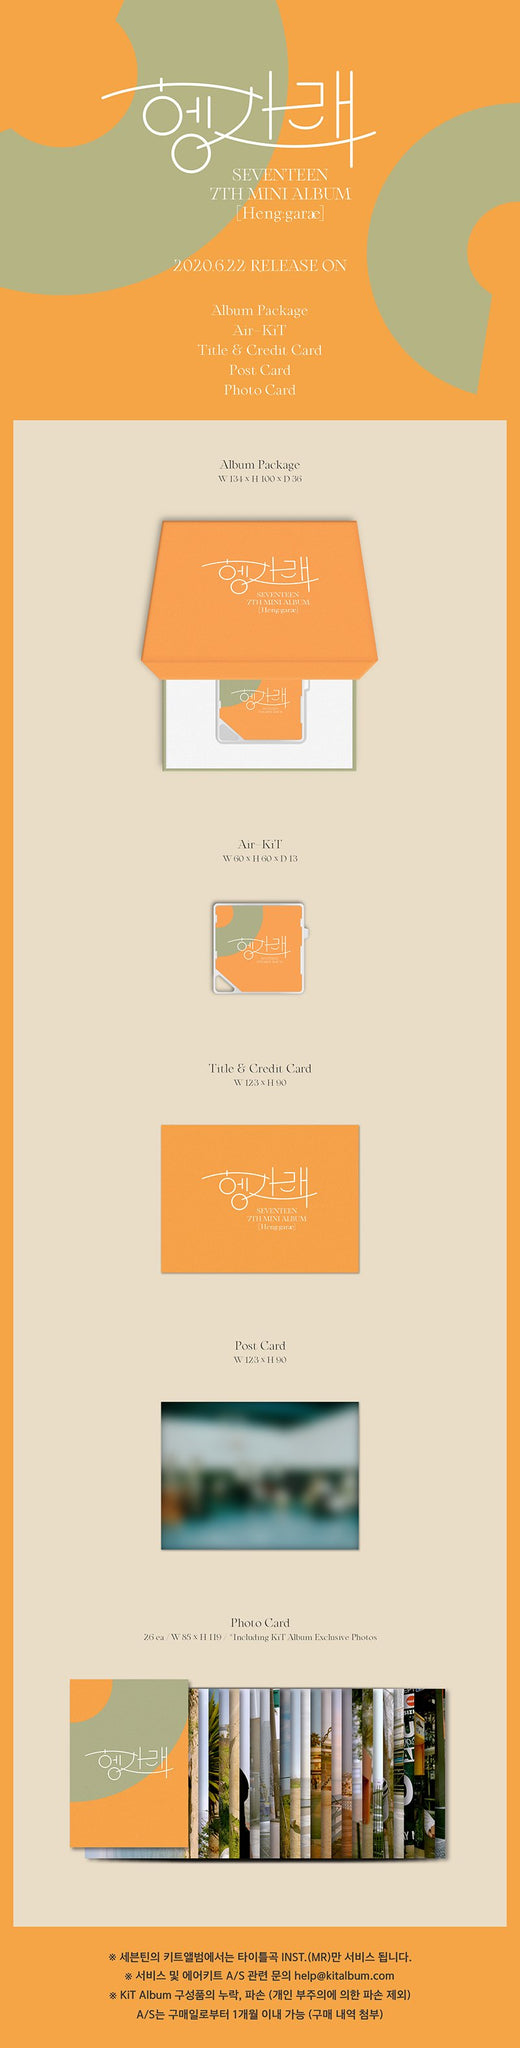 SEVENTEEN 7th Mini KiT Album - Heng:garae 헹가래 AIR KiT